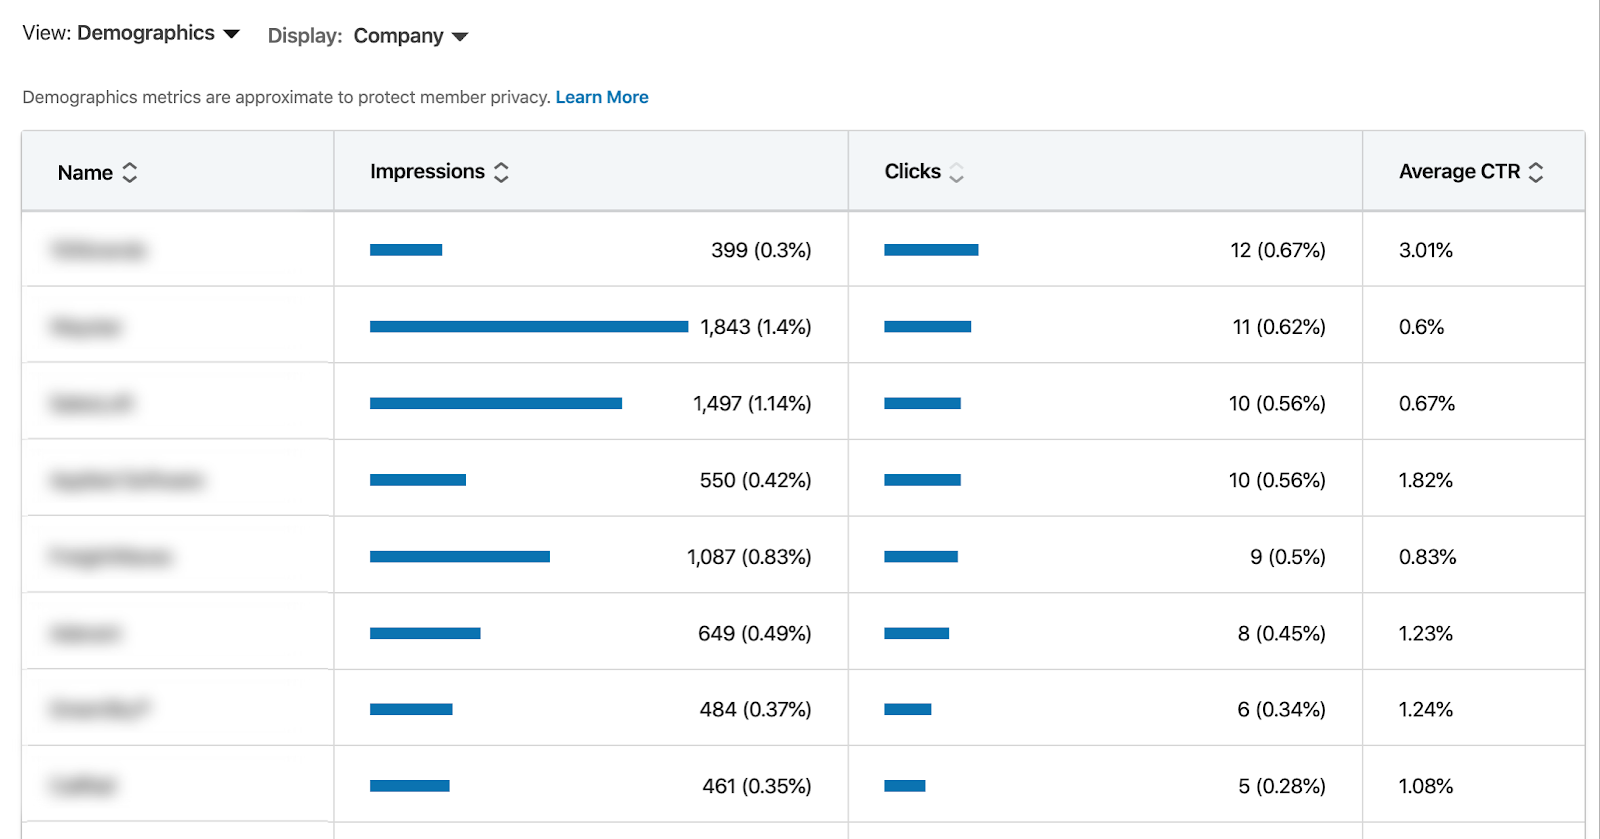 LinkedIn report breaking down company name, impressions, clicks, and CTR